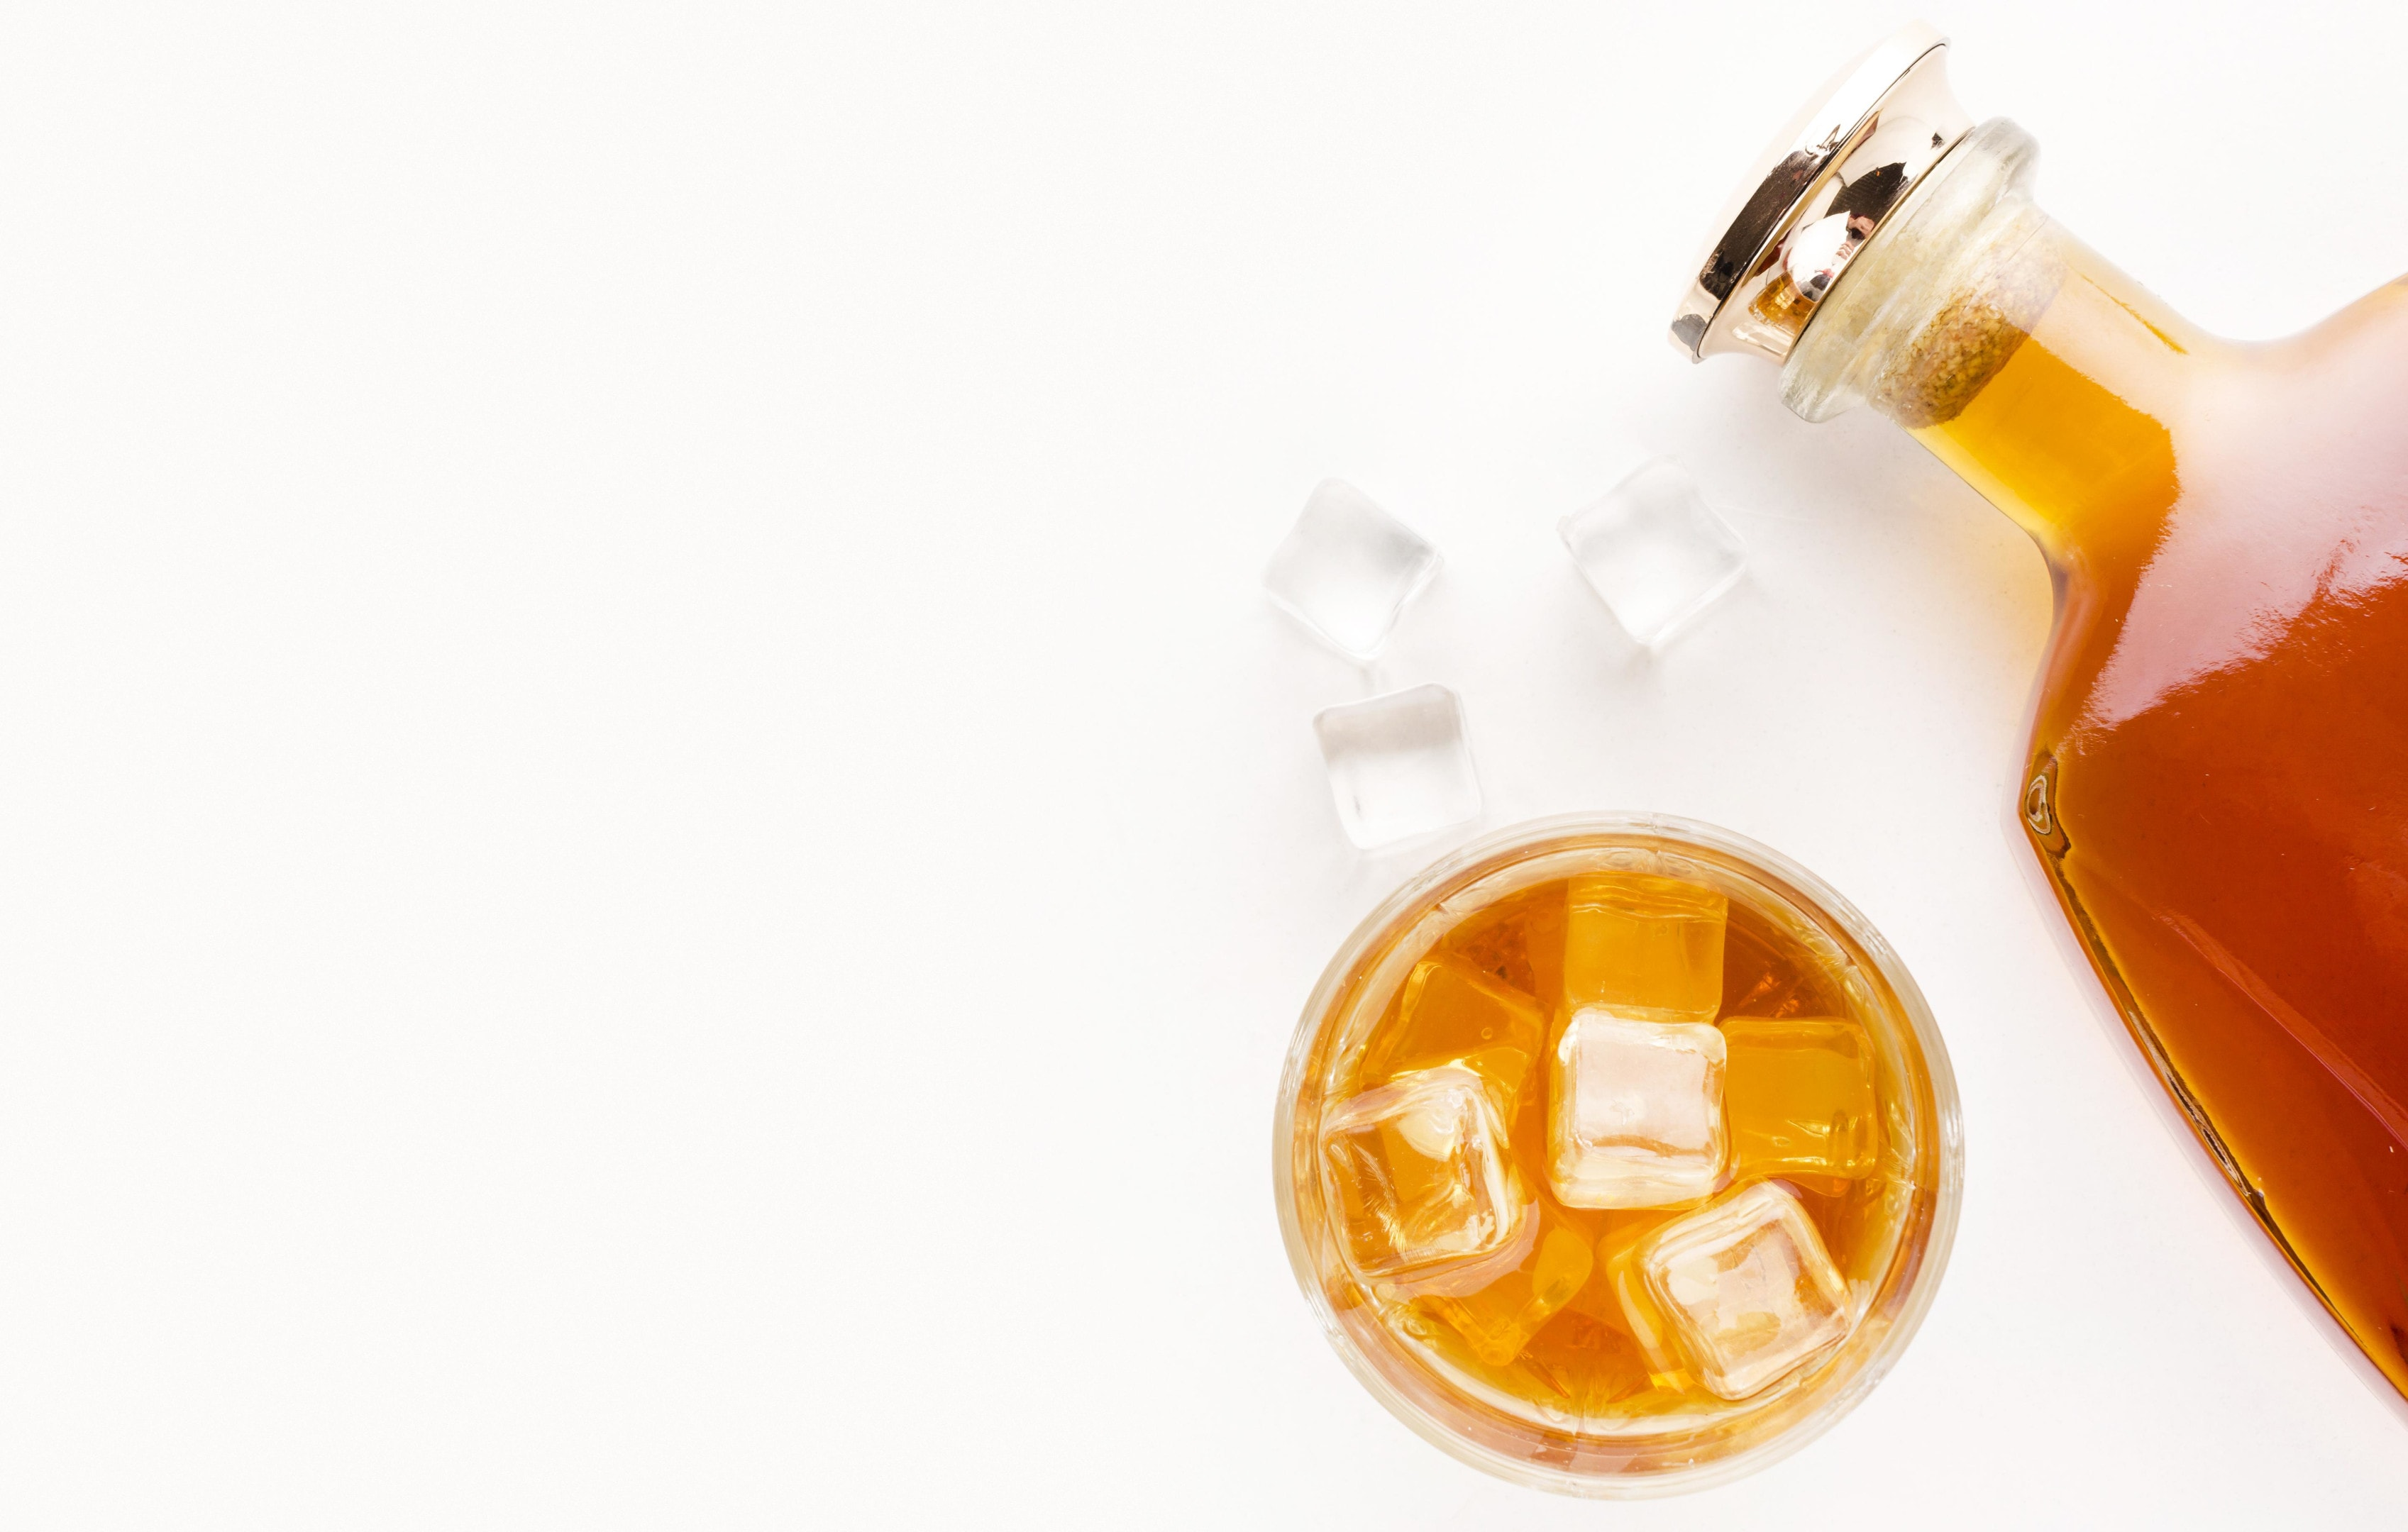 Whiskey bottle with glass on white background